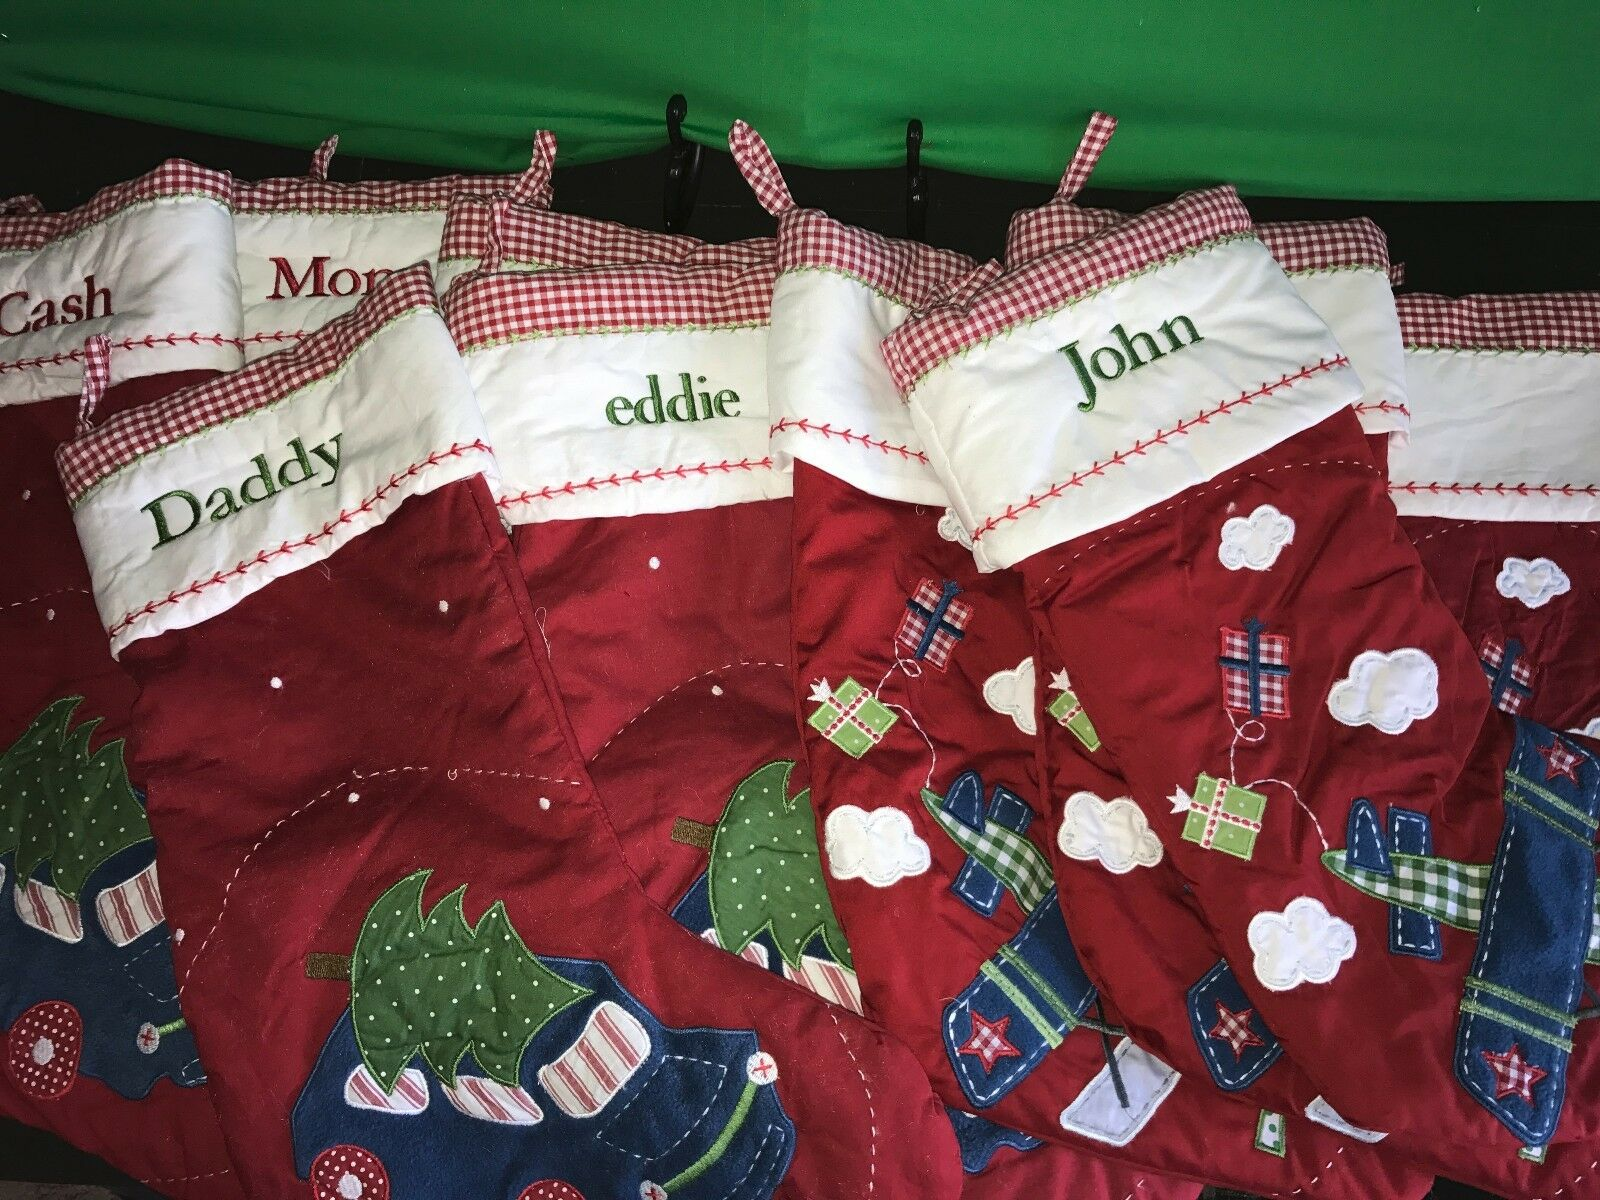 POTTERY BARN KIDS New Quilted Plane Car Tree Christmas Stocking ...